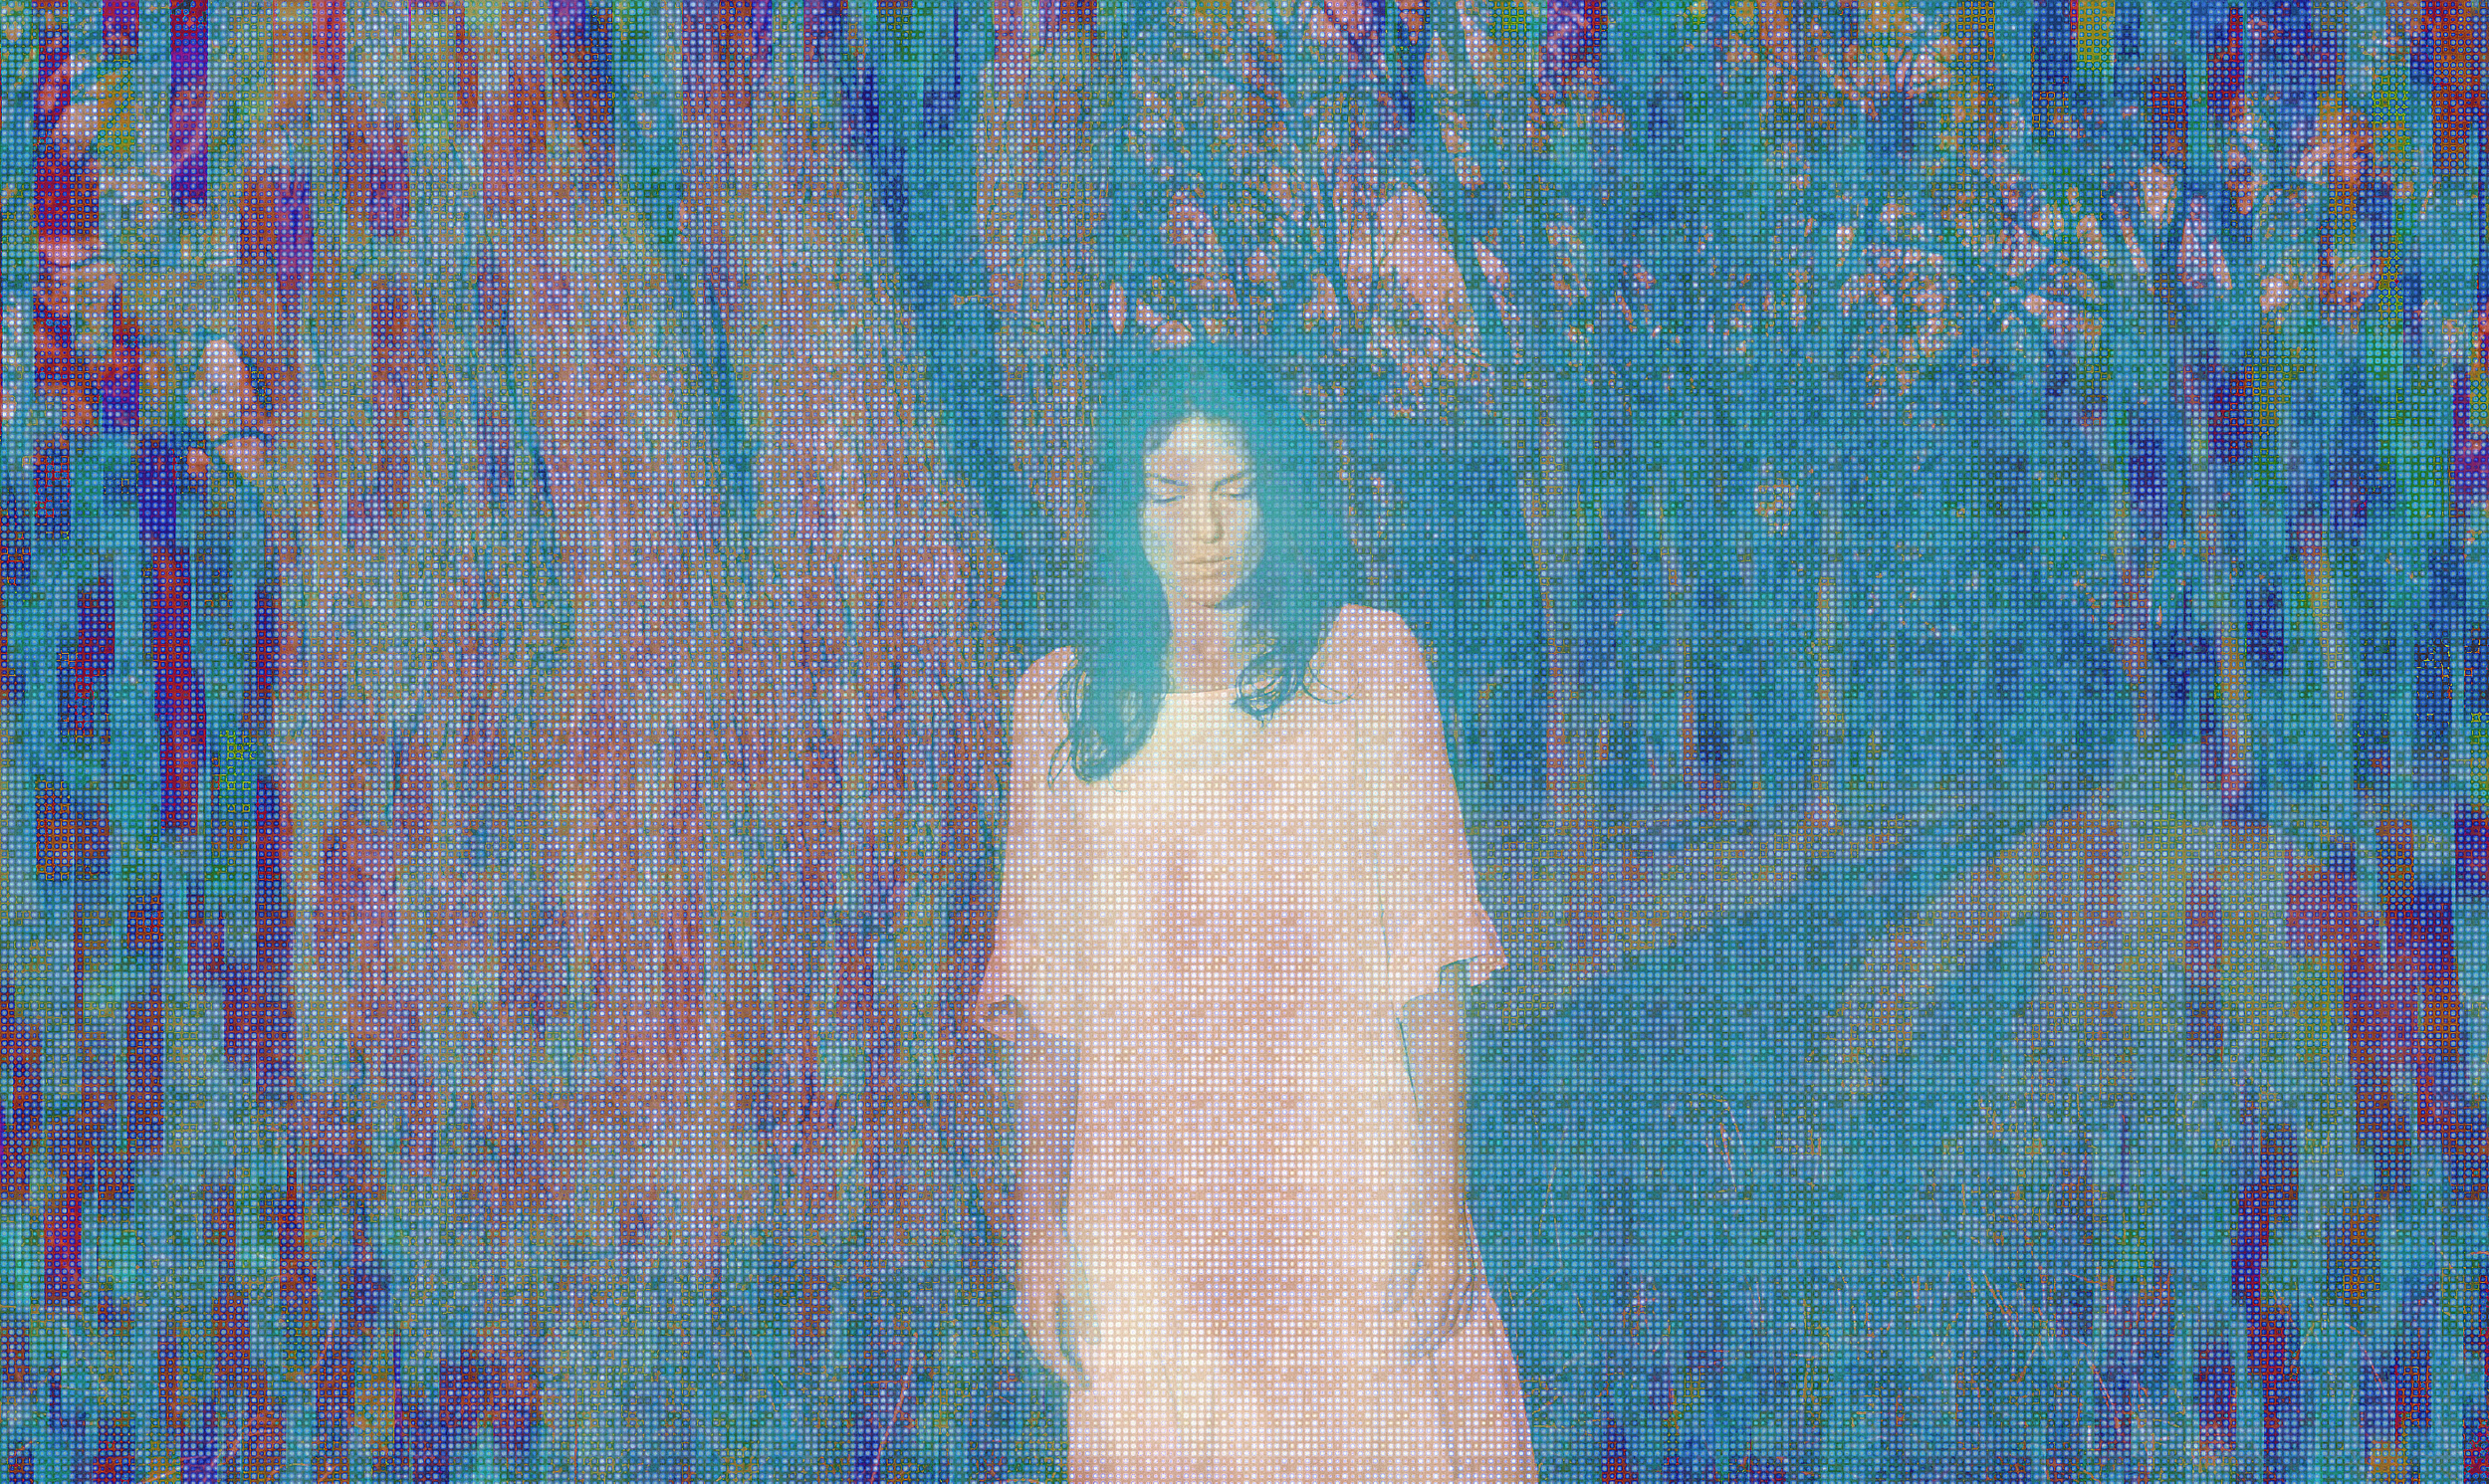 The Magician (Blue Version)2015  Limited Edition Pigmented Archival Print  22 x 36.8 in  1/22  printed by Red River, OKC USA